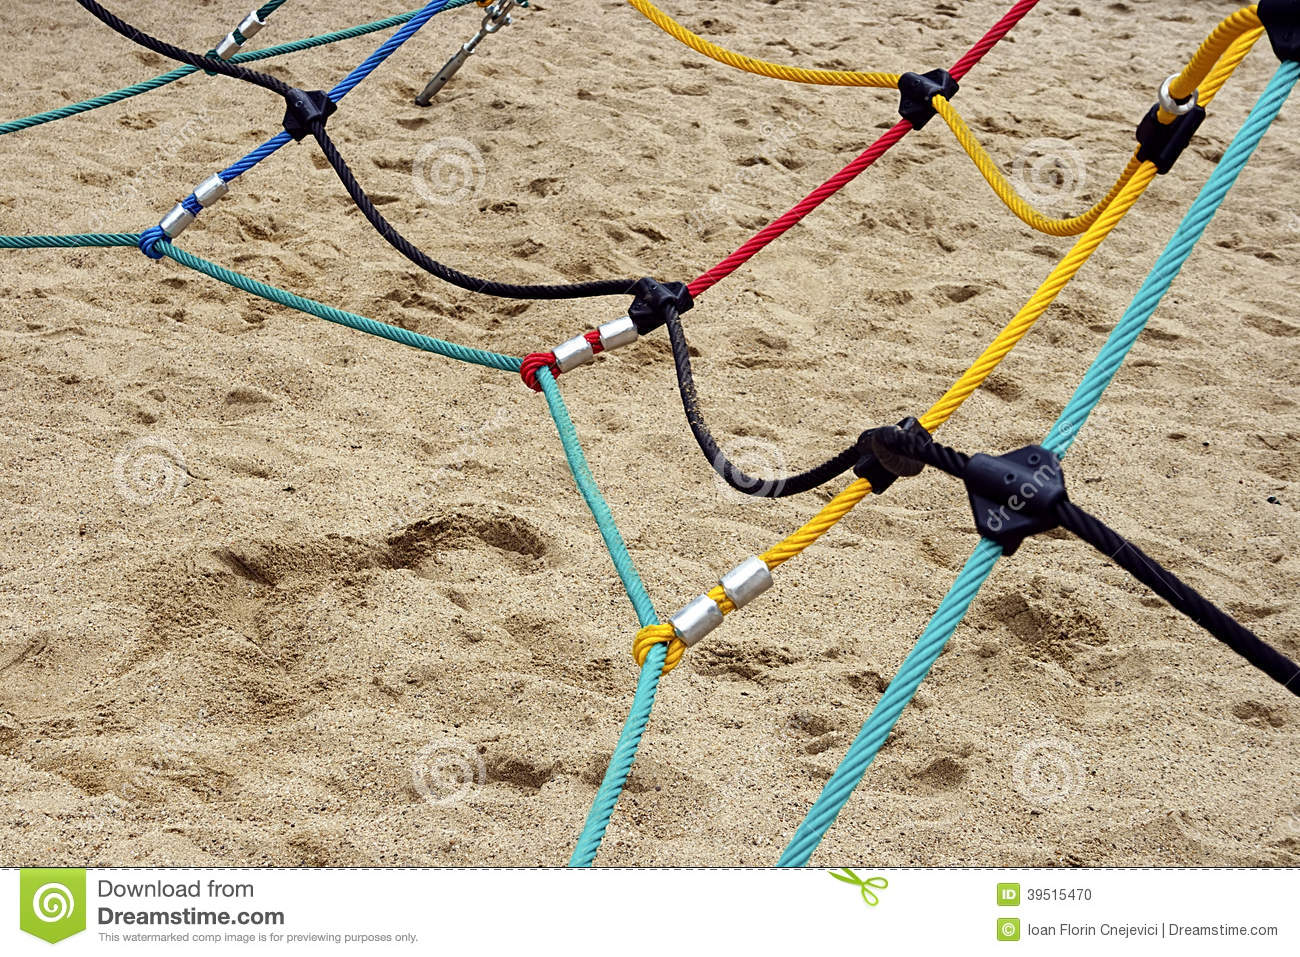 Colored ropes fastened together 2